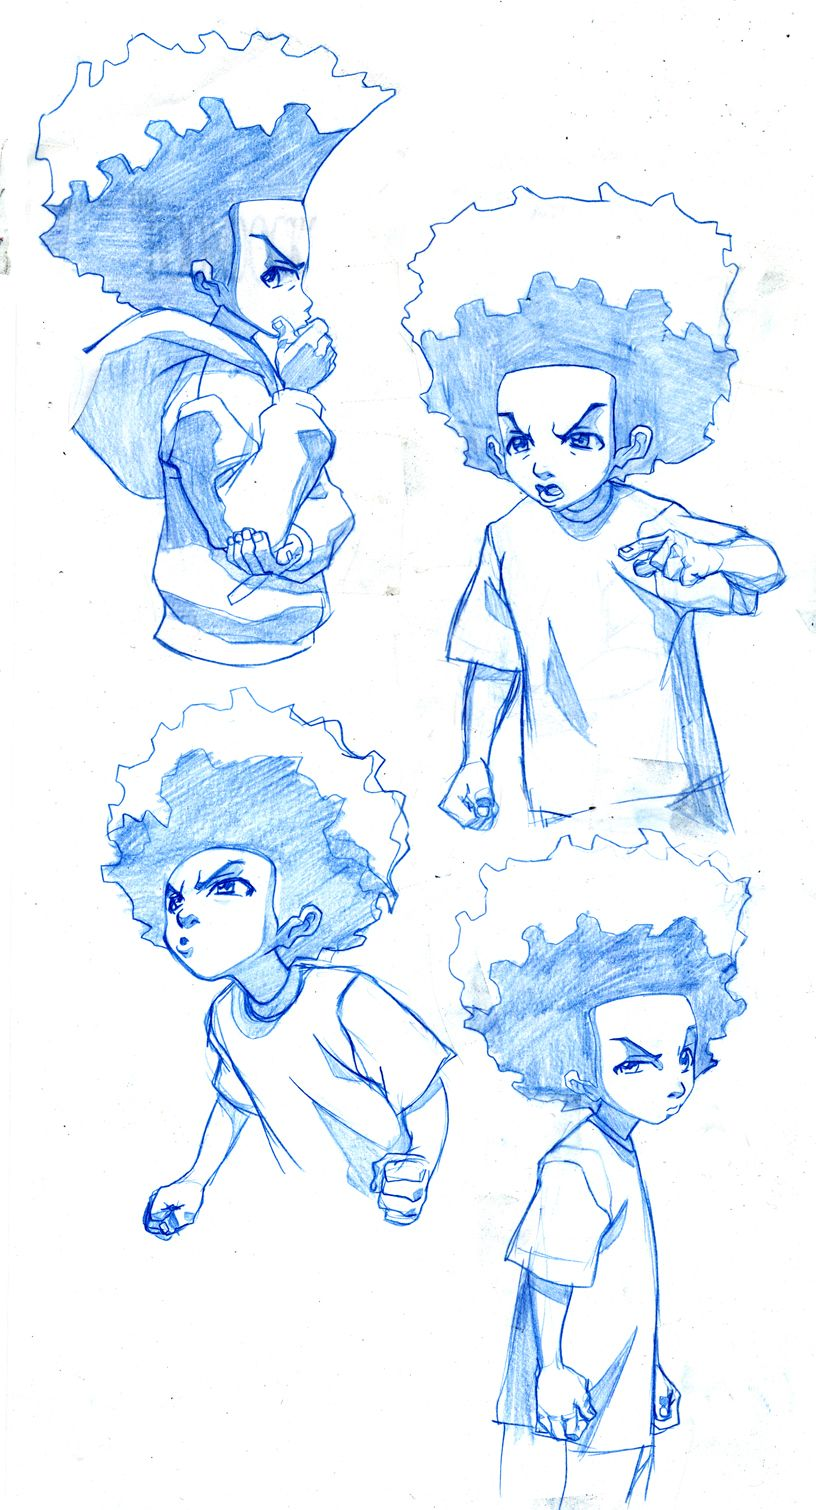 Boondocks Drawing Style : boondocks, drawing, style, Structure